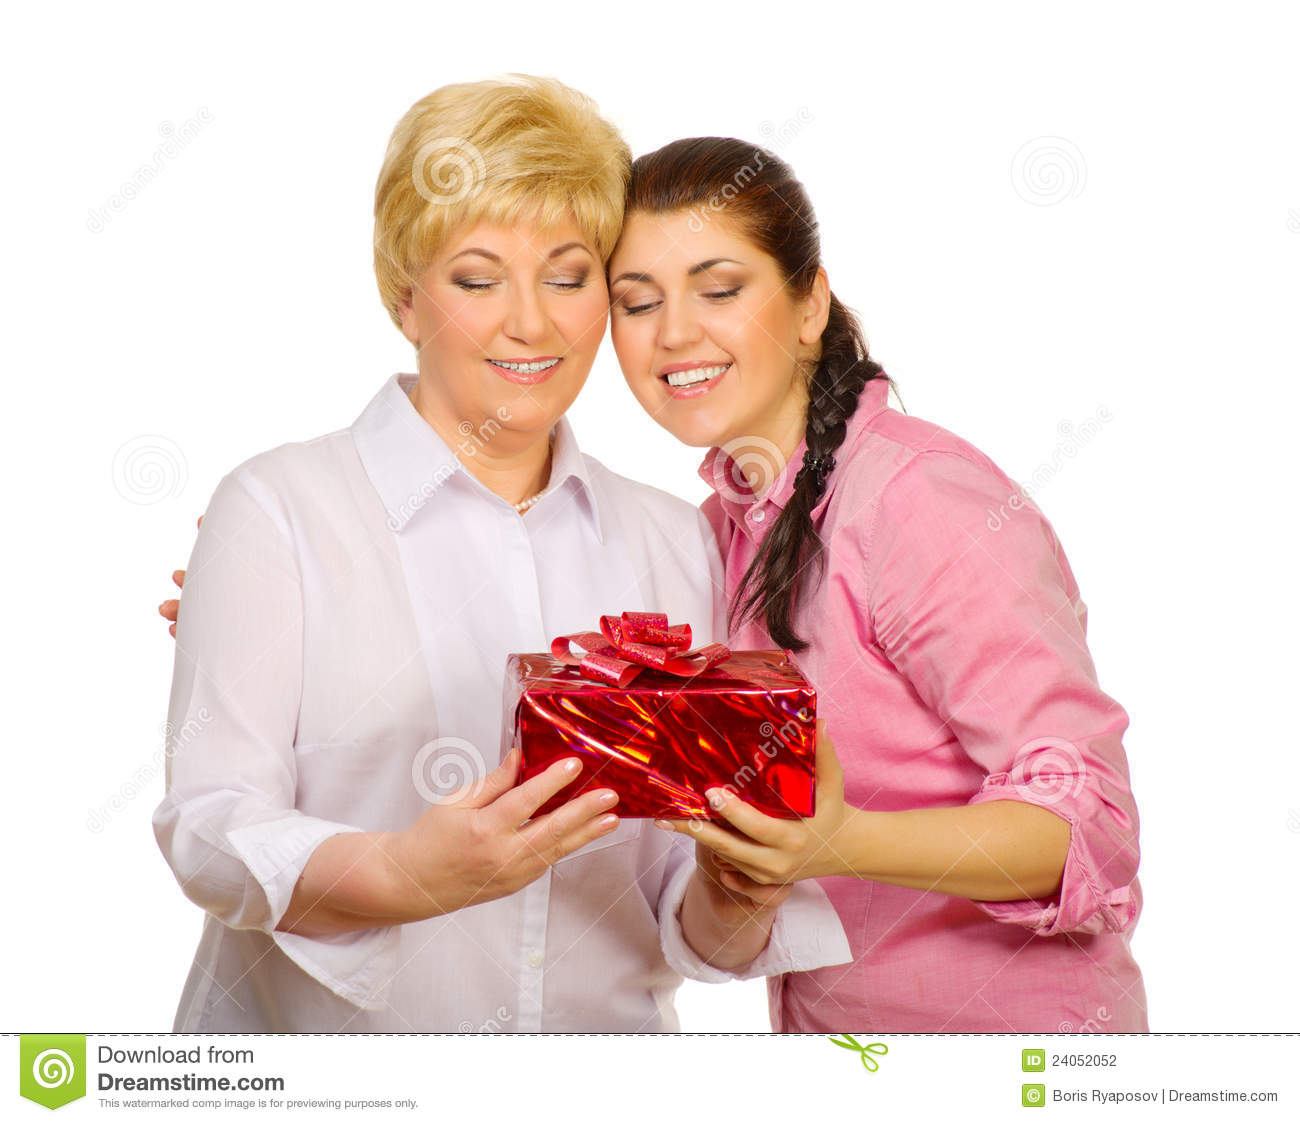 Top 12 Gifts you can Give your Mom on her Birthday